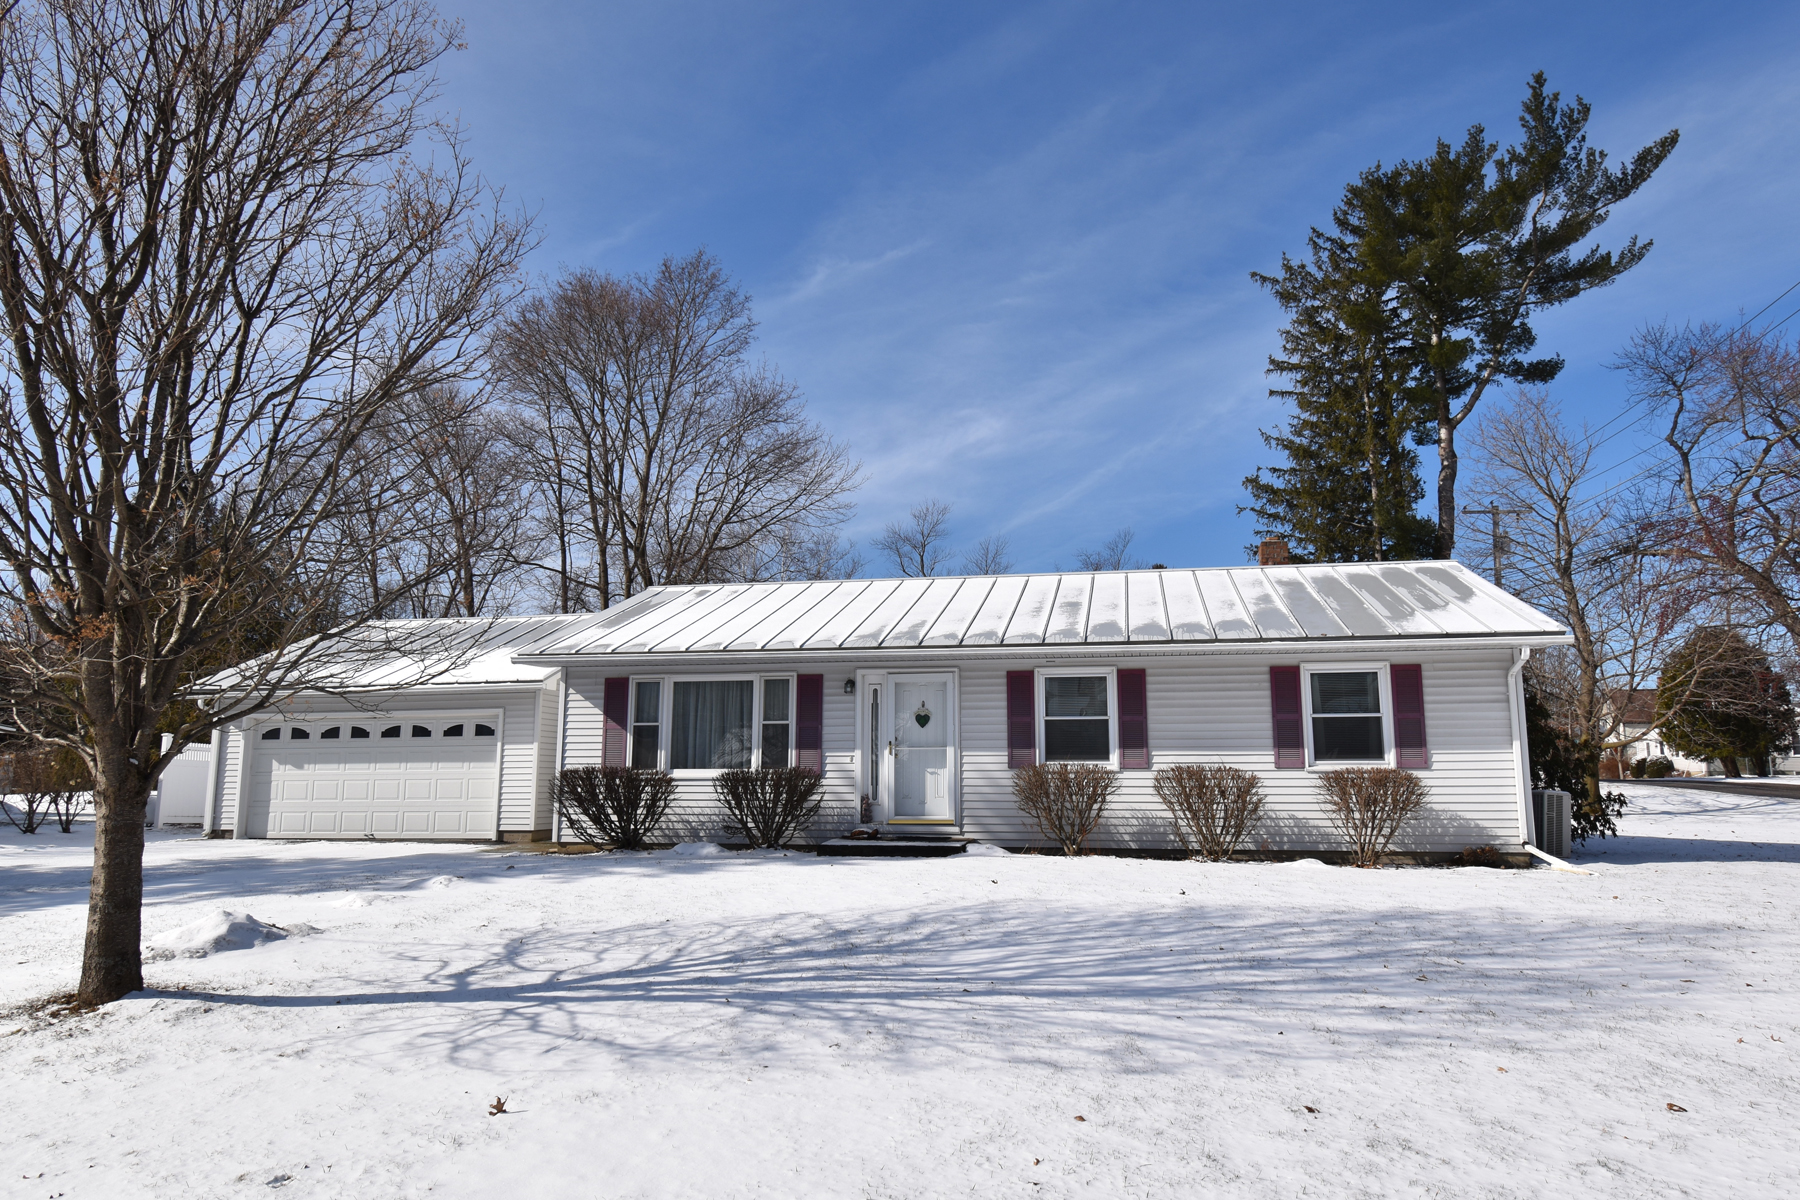 Single Family Homes for Sale at Northeast Section Ranch 11 Thomas Street Rutland, Vermont 05701 United States